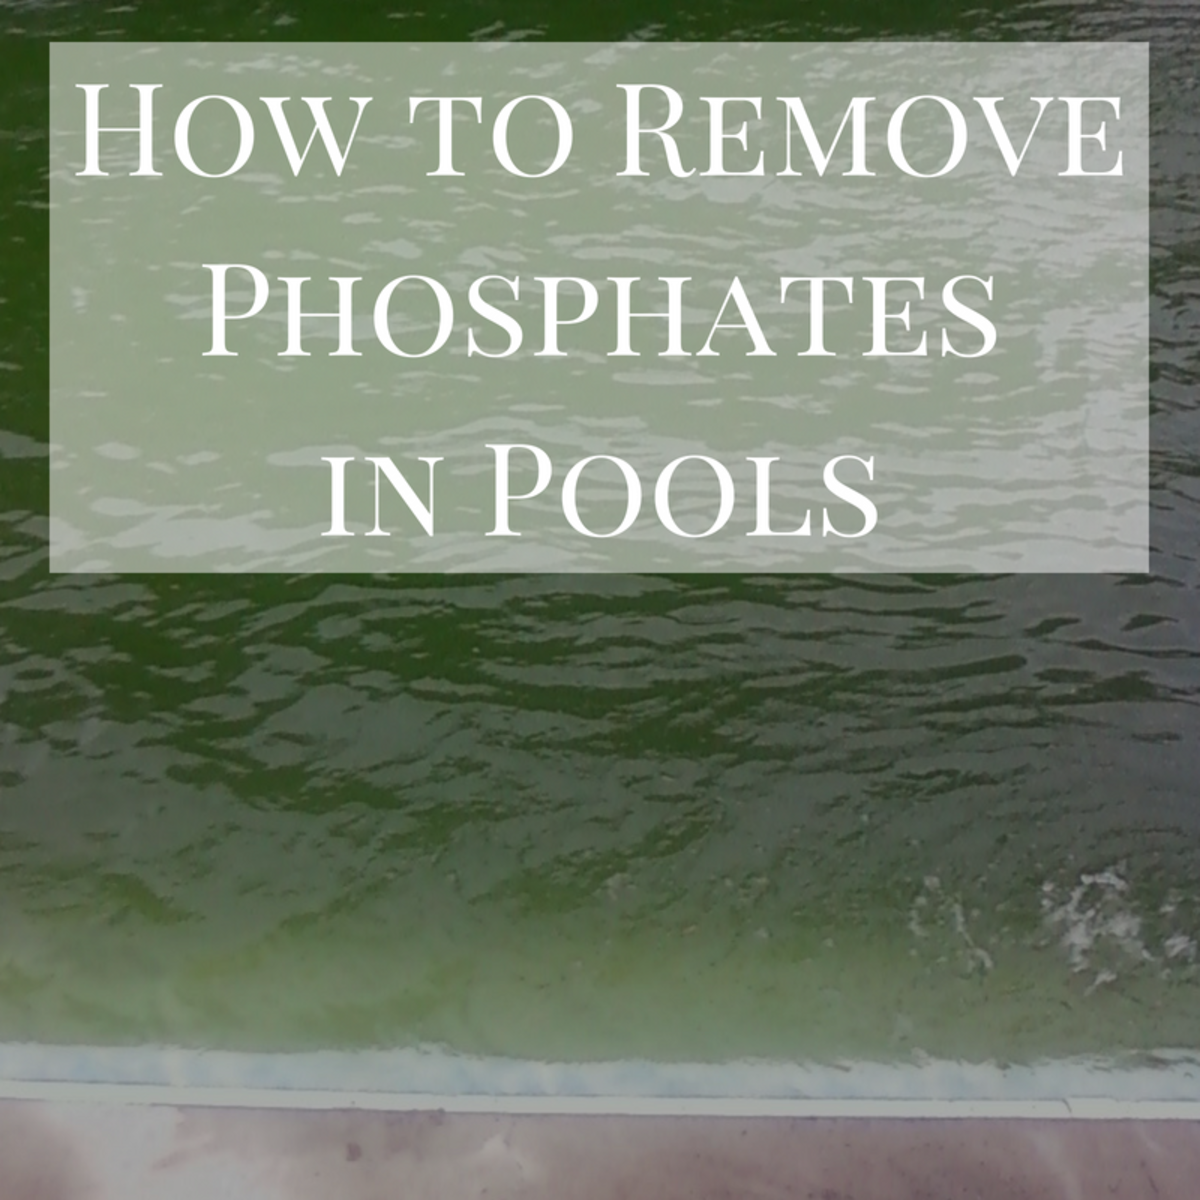 What are phosphates in pools, and how do you remove them?